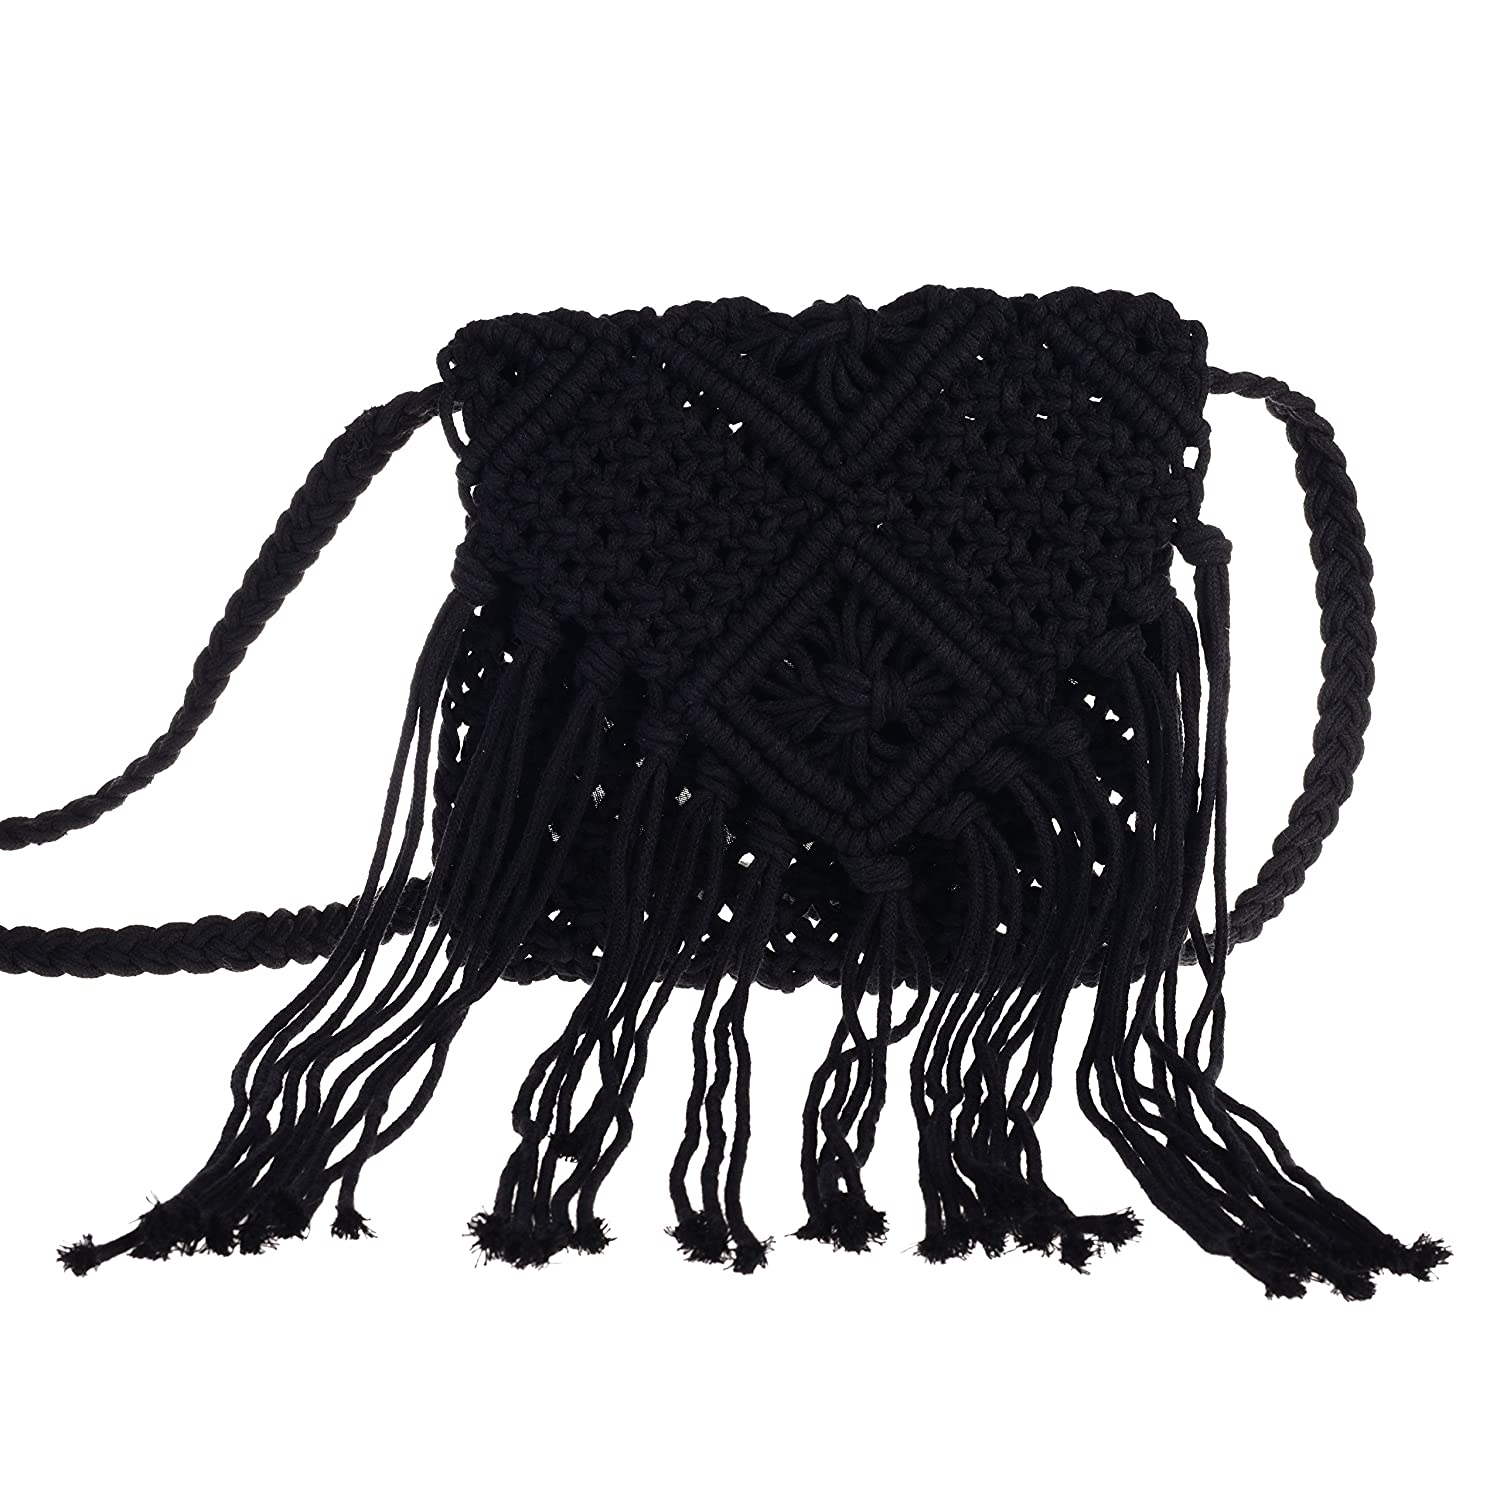 Vintage & Retro Handbags, Purses, Wallets, Bags I-MART Women Crochet Fringed Messenger Bags Tassels Cross Beach Bohemian Tassel Shoulder Bag $16.99 AT vintagedancer.com